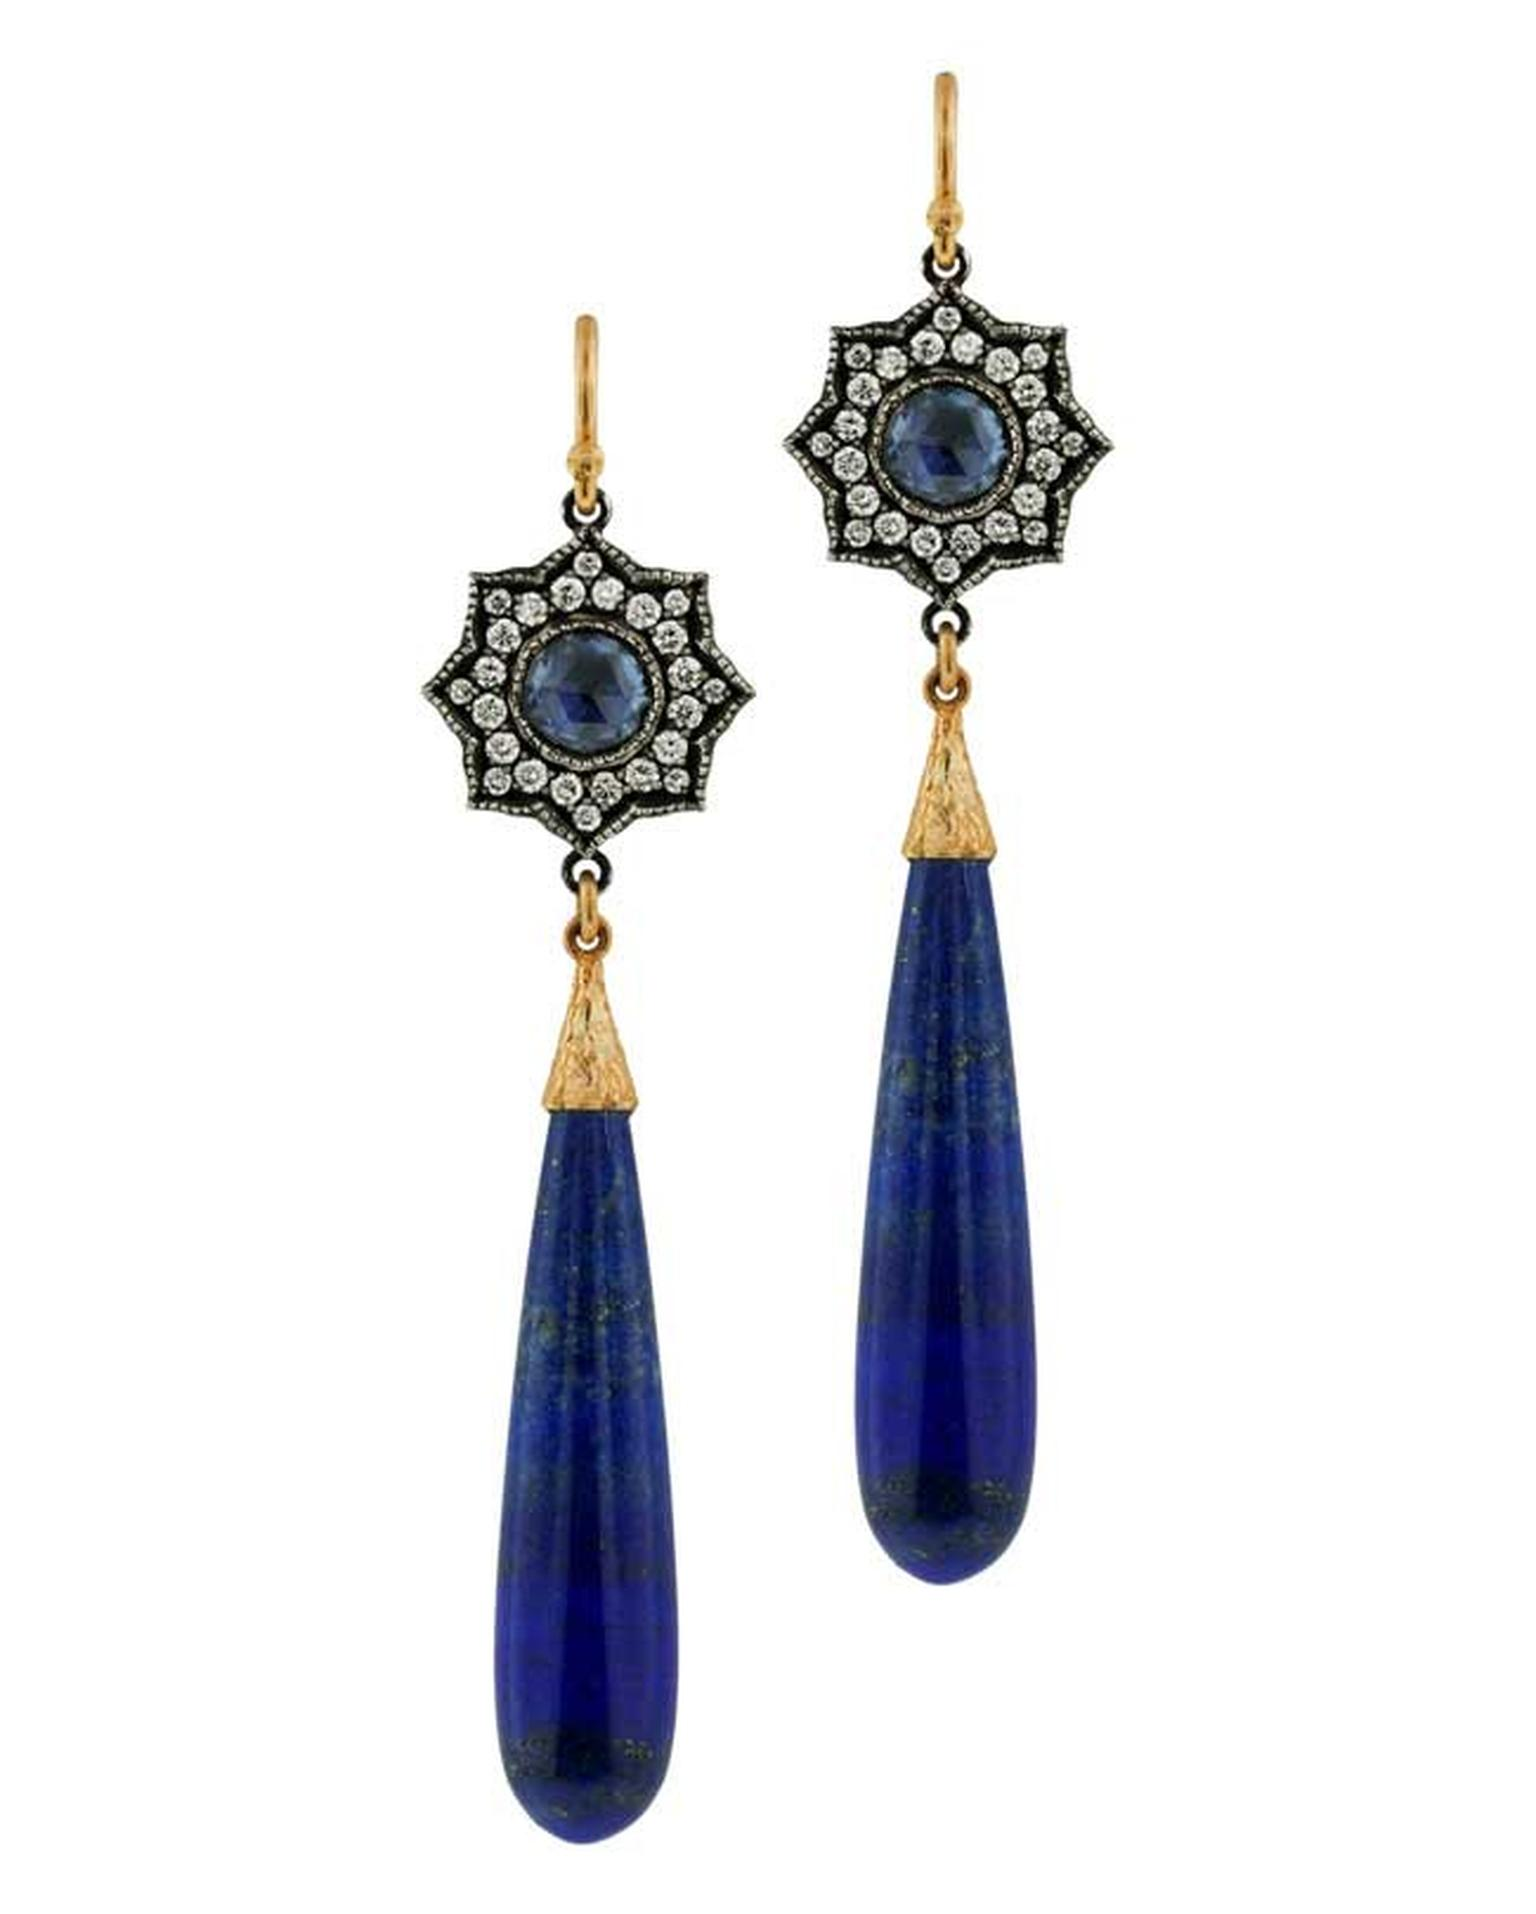 Arman Sarkisyan Lapis Lazuli Star Drop earrings.